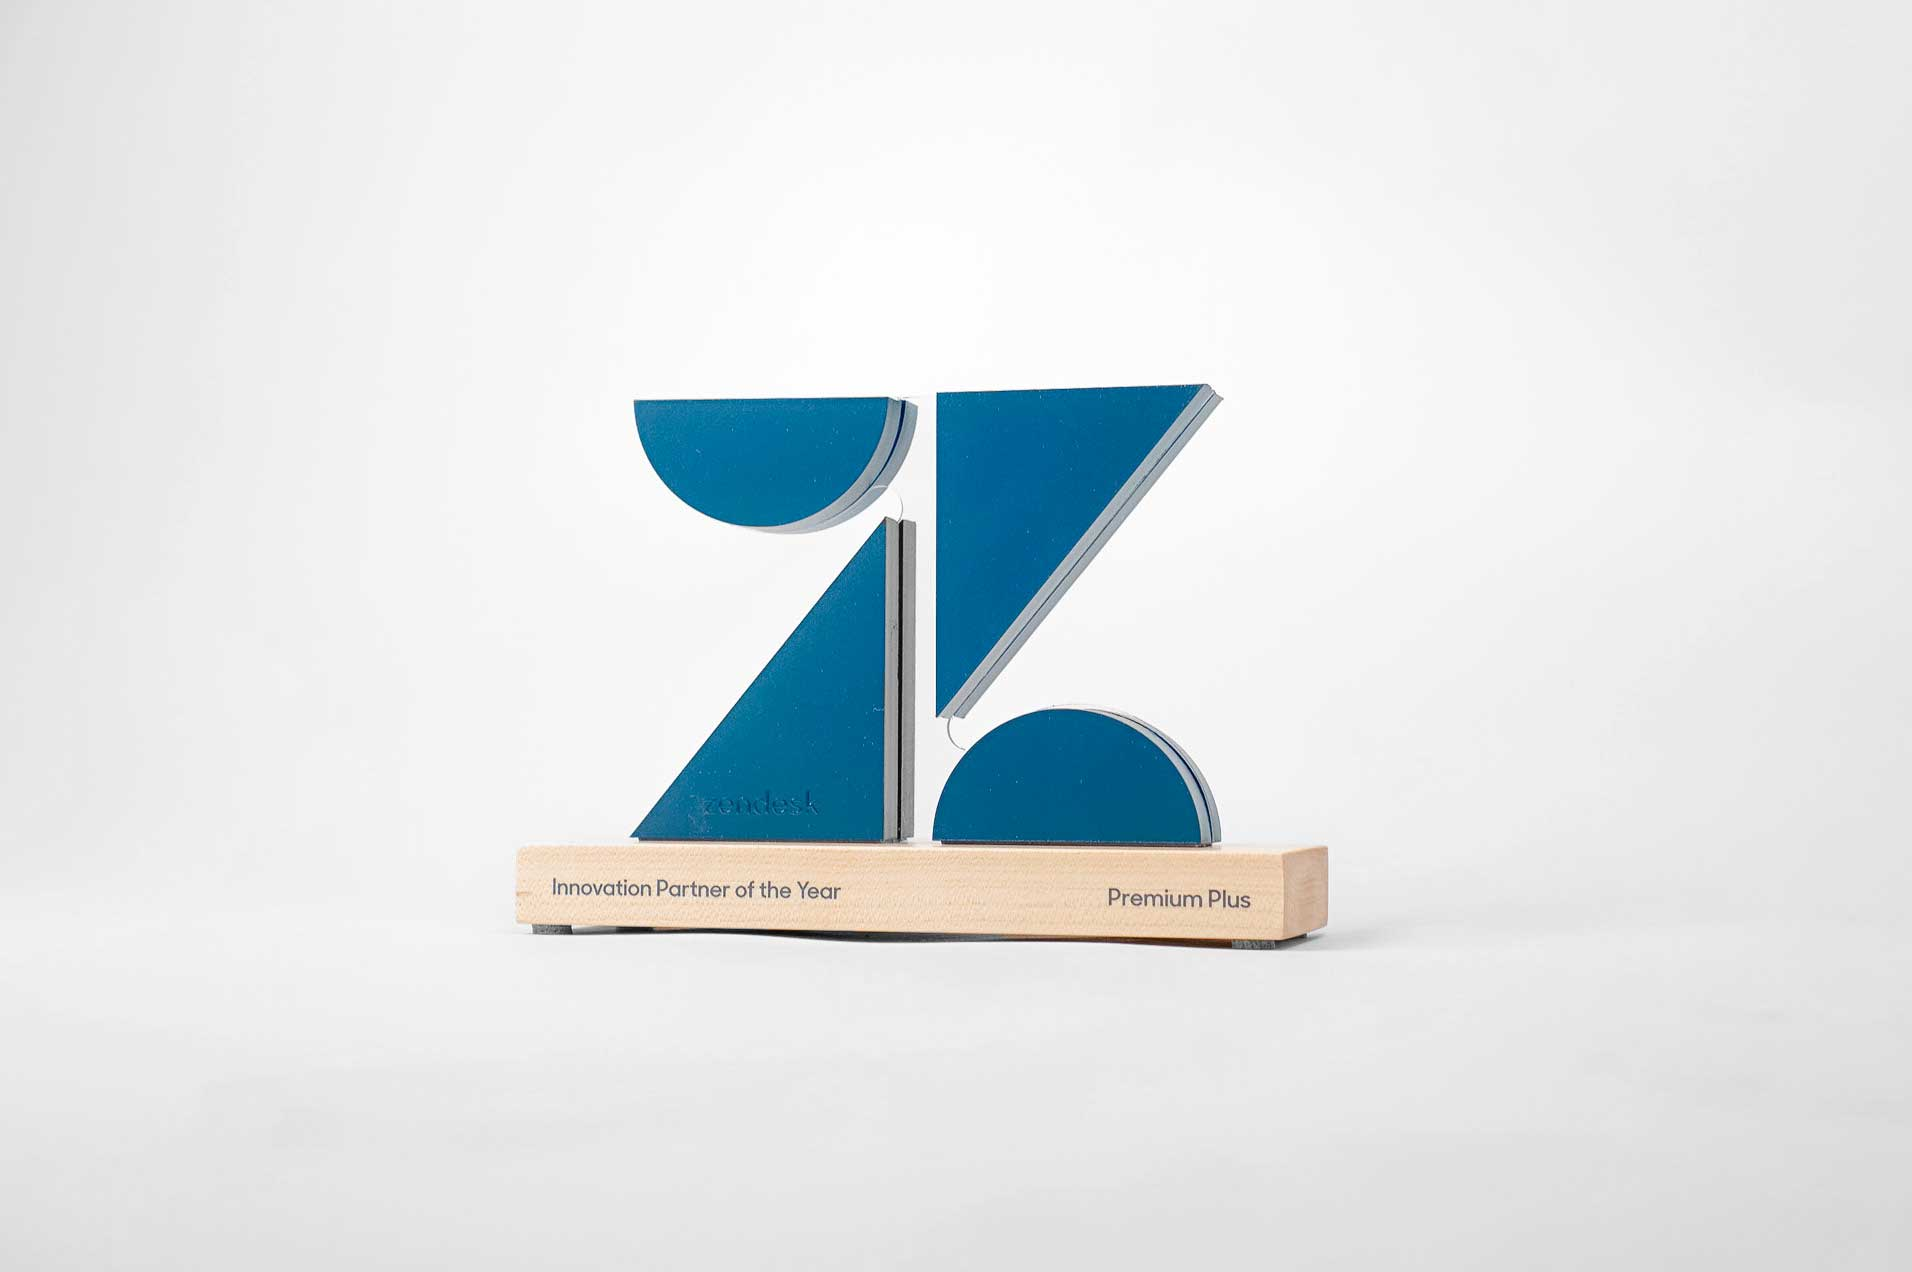 Custom cut, logo shaped partner award with optical illusion for Zendesk, a customer service software company headquartered in San Francisco, California.